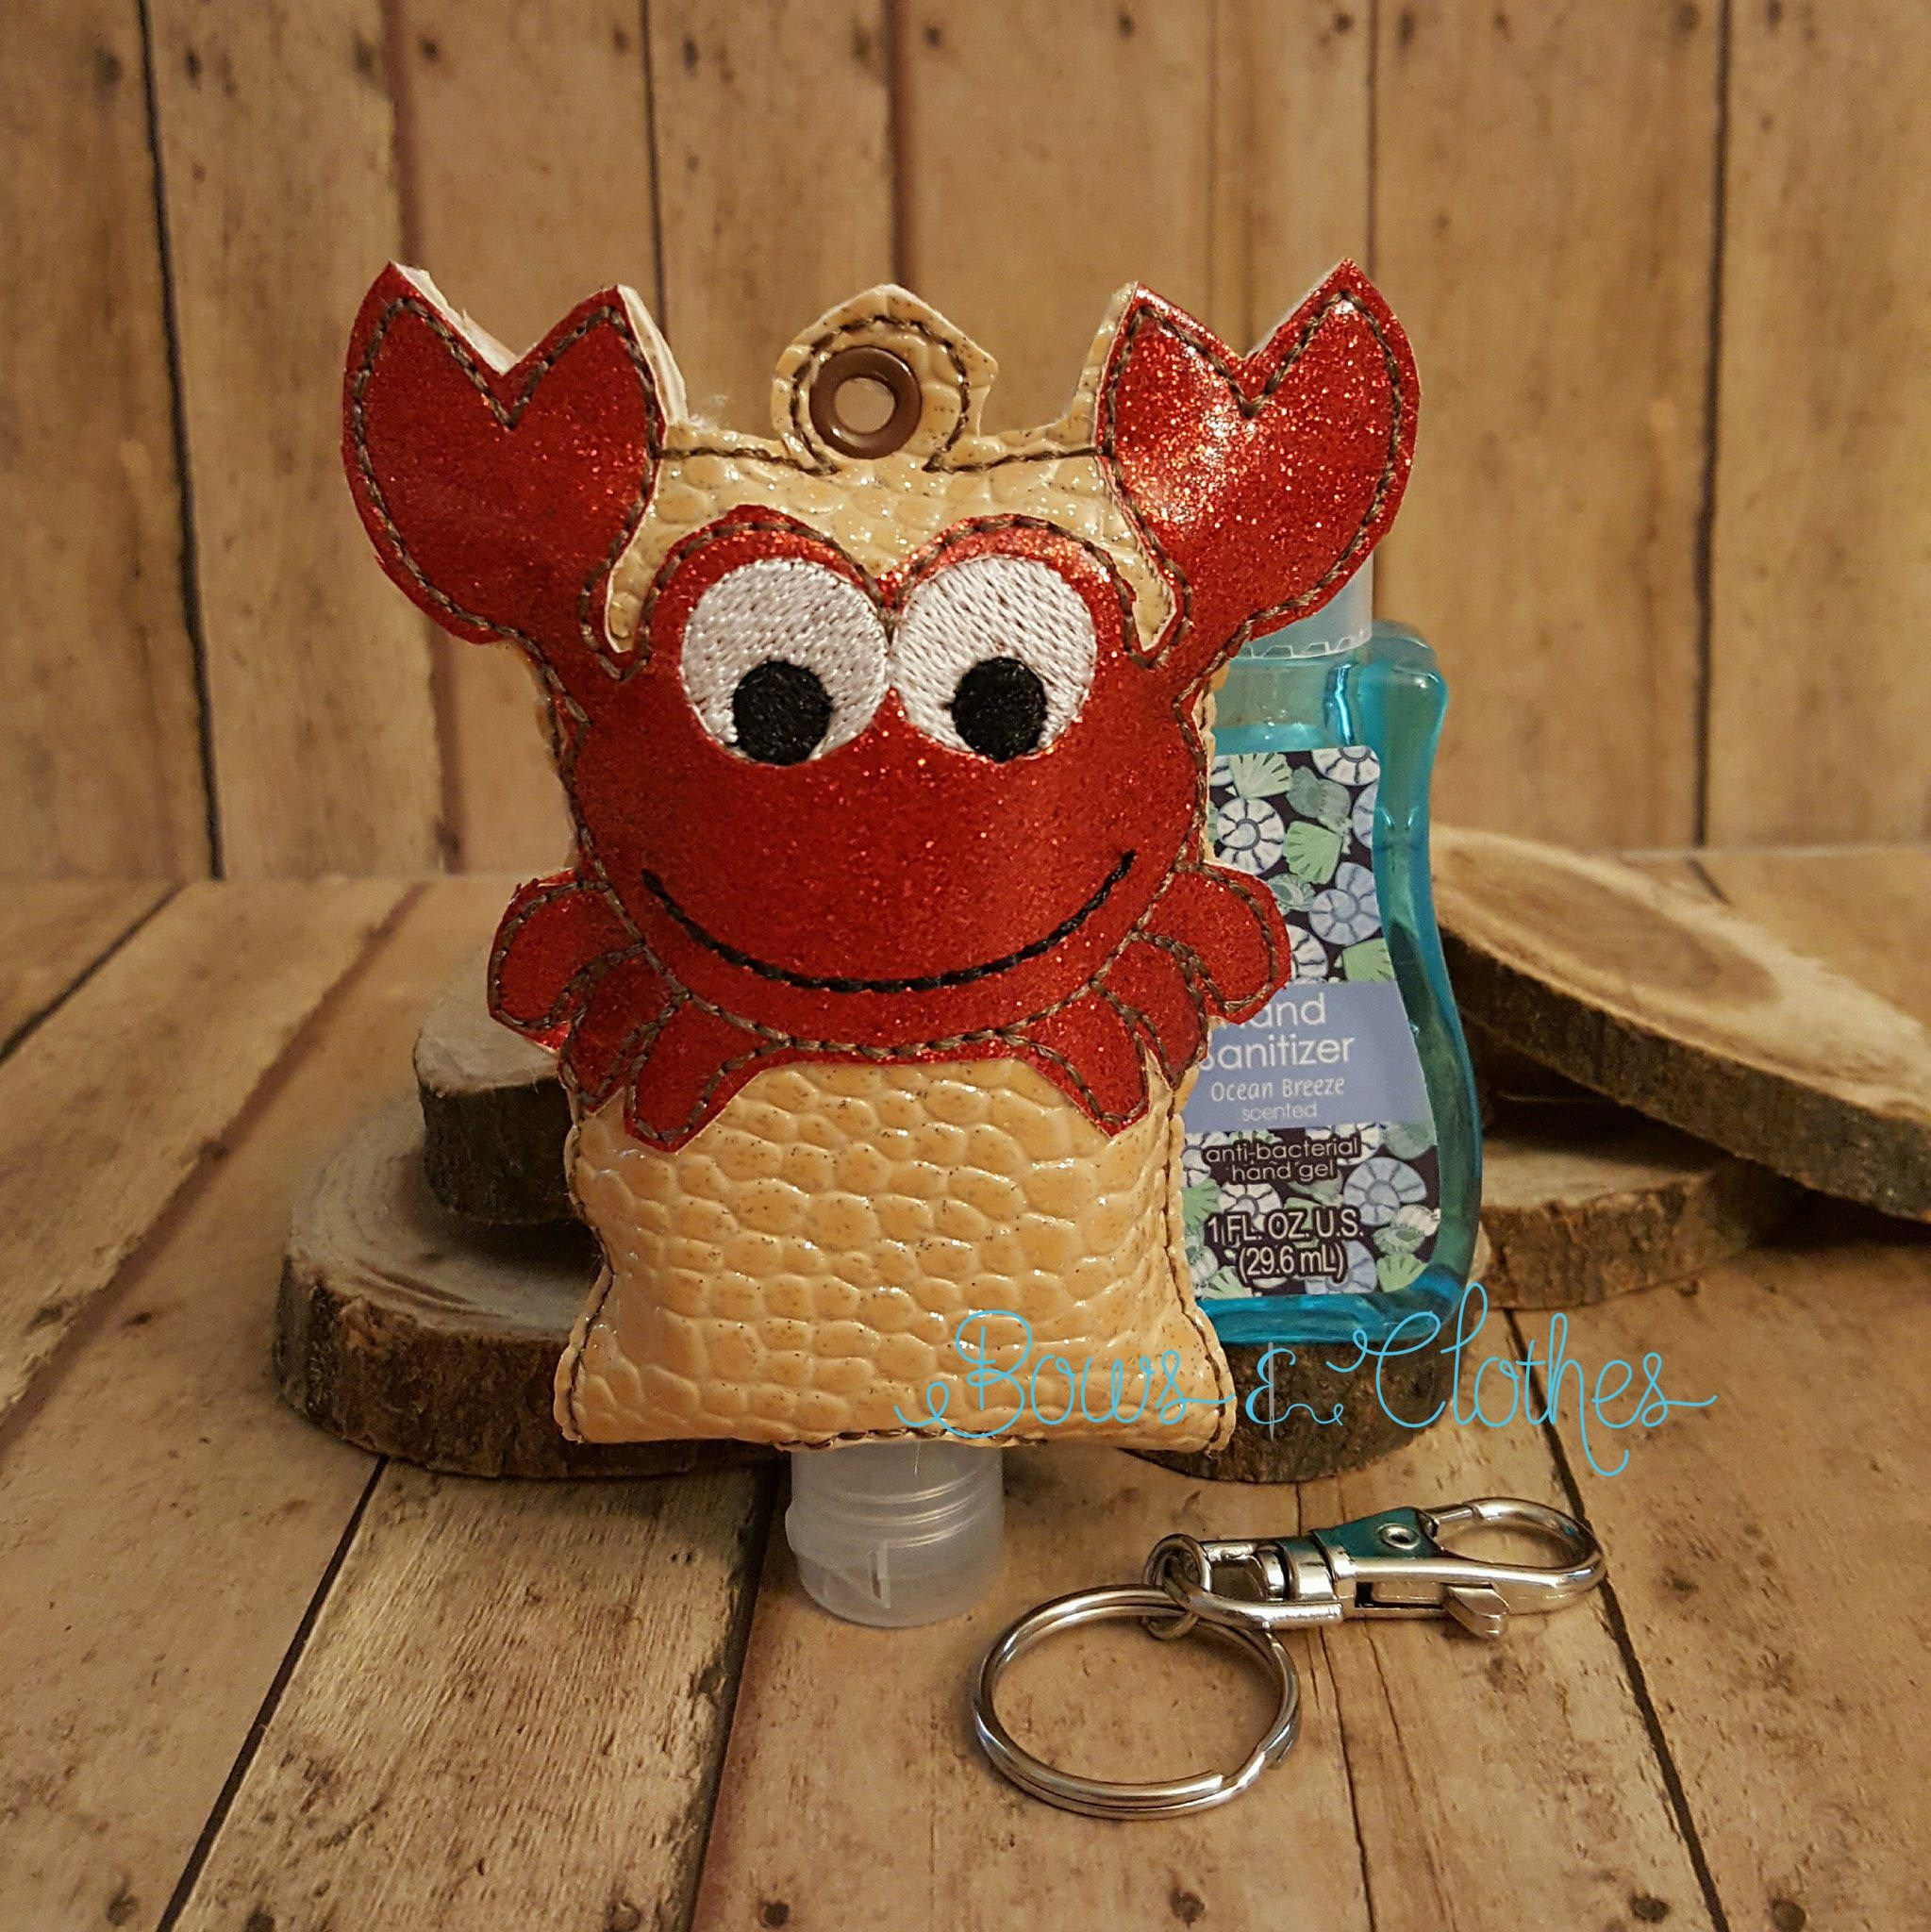 Crab Open Tab Hand Sanitizer Hand Sanitizer Embroidery Designs